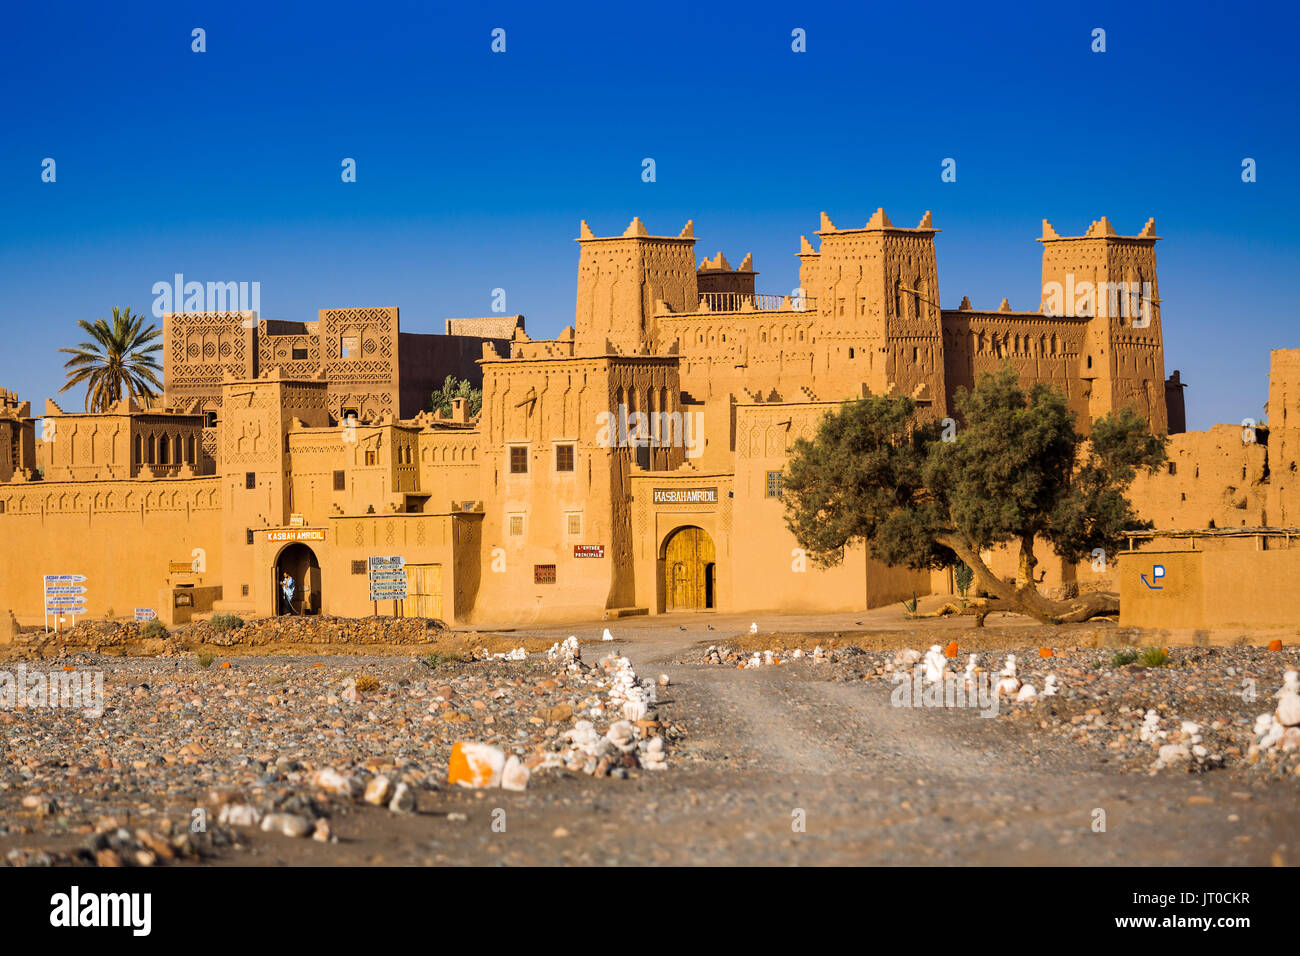 Hotel Kasbah Amridil, Dades Valley, Skoura oasis Palm Grove. Morocco, Maghreb North Africa Stock Photo